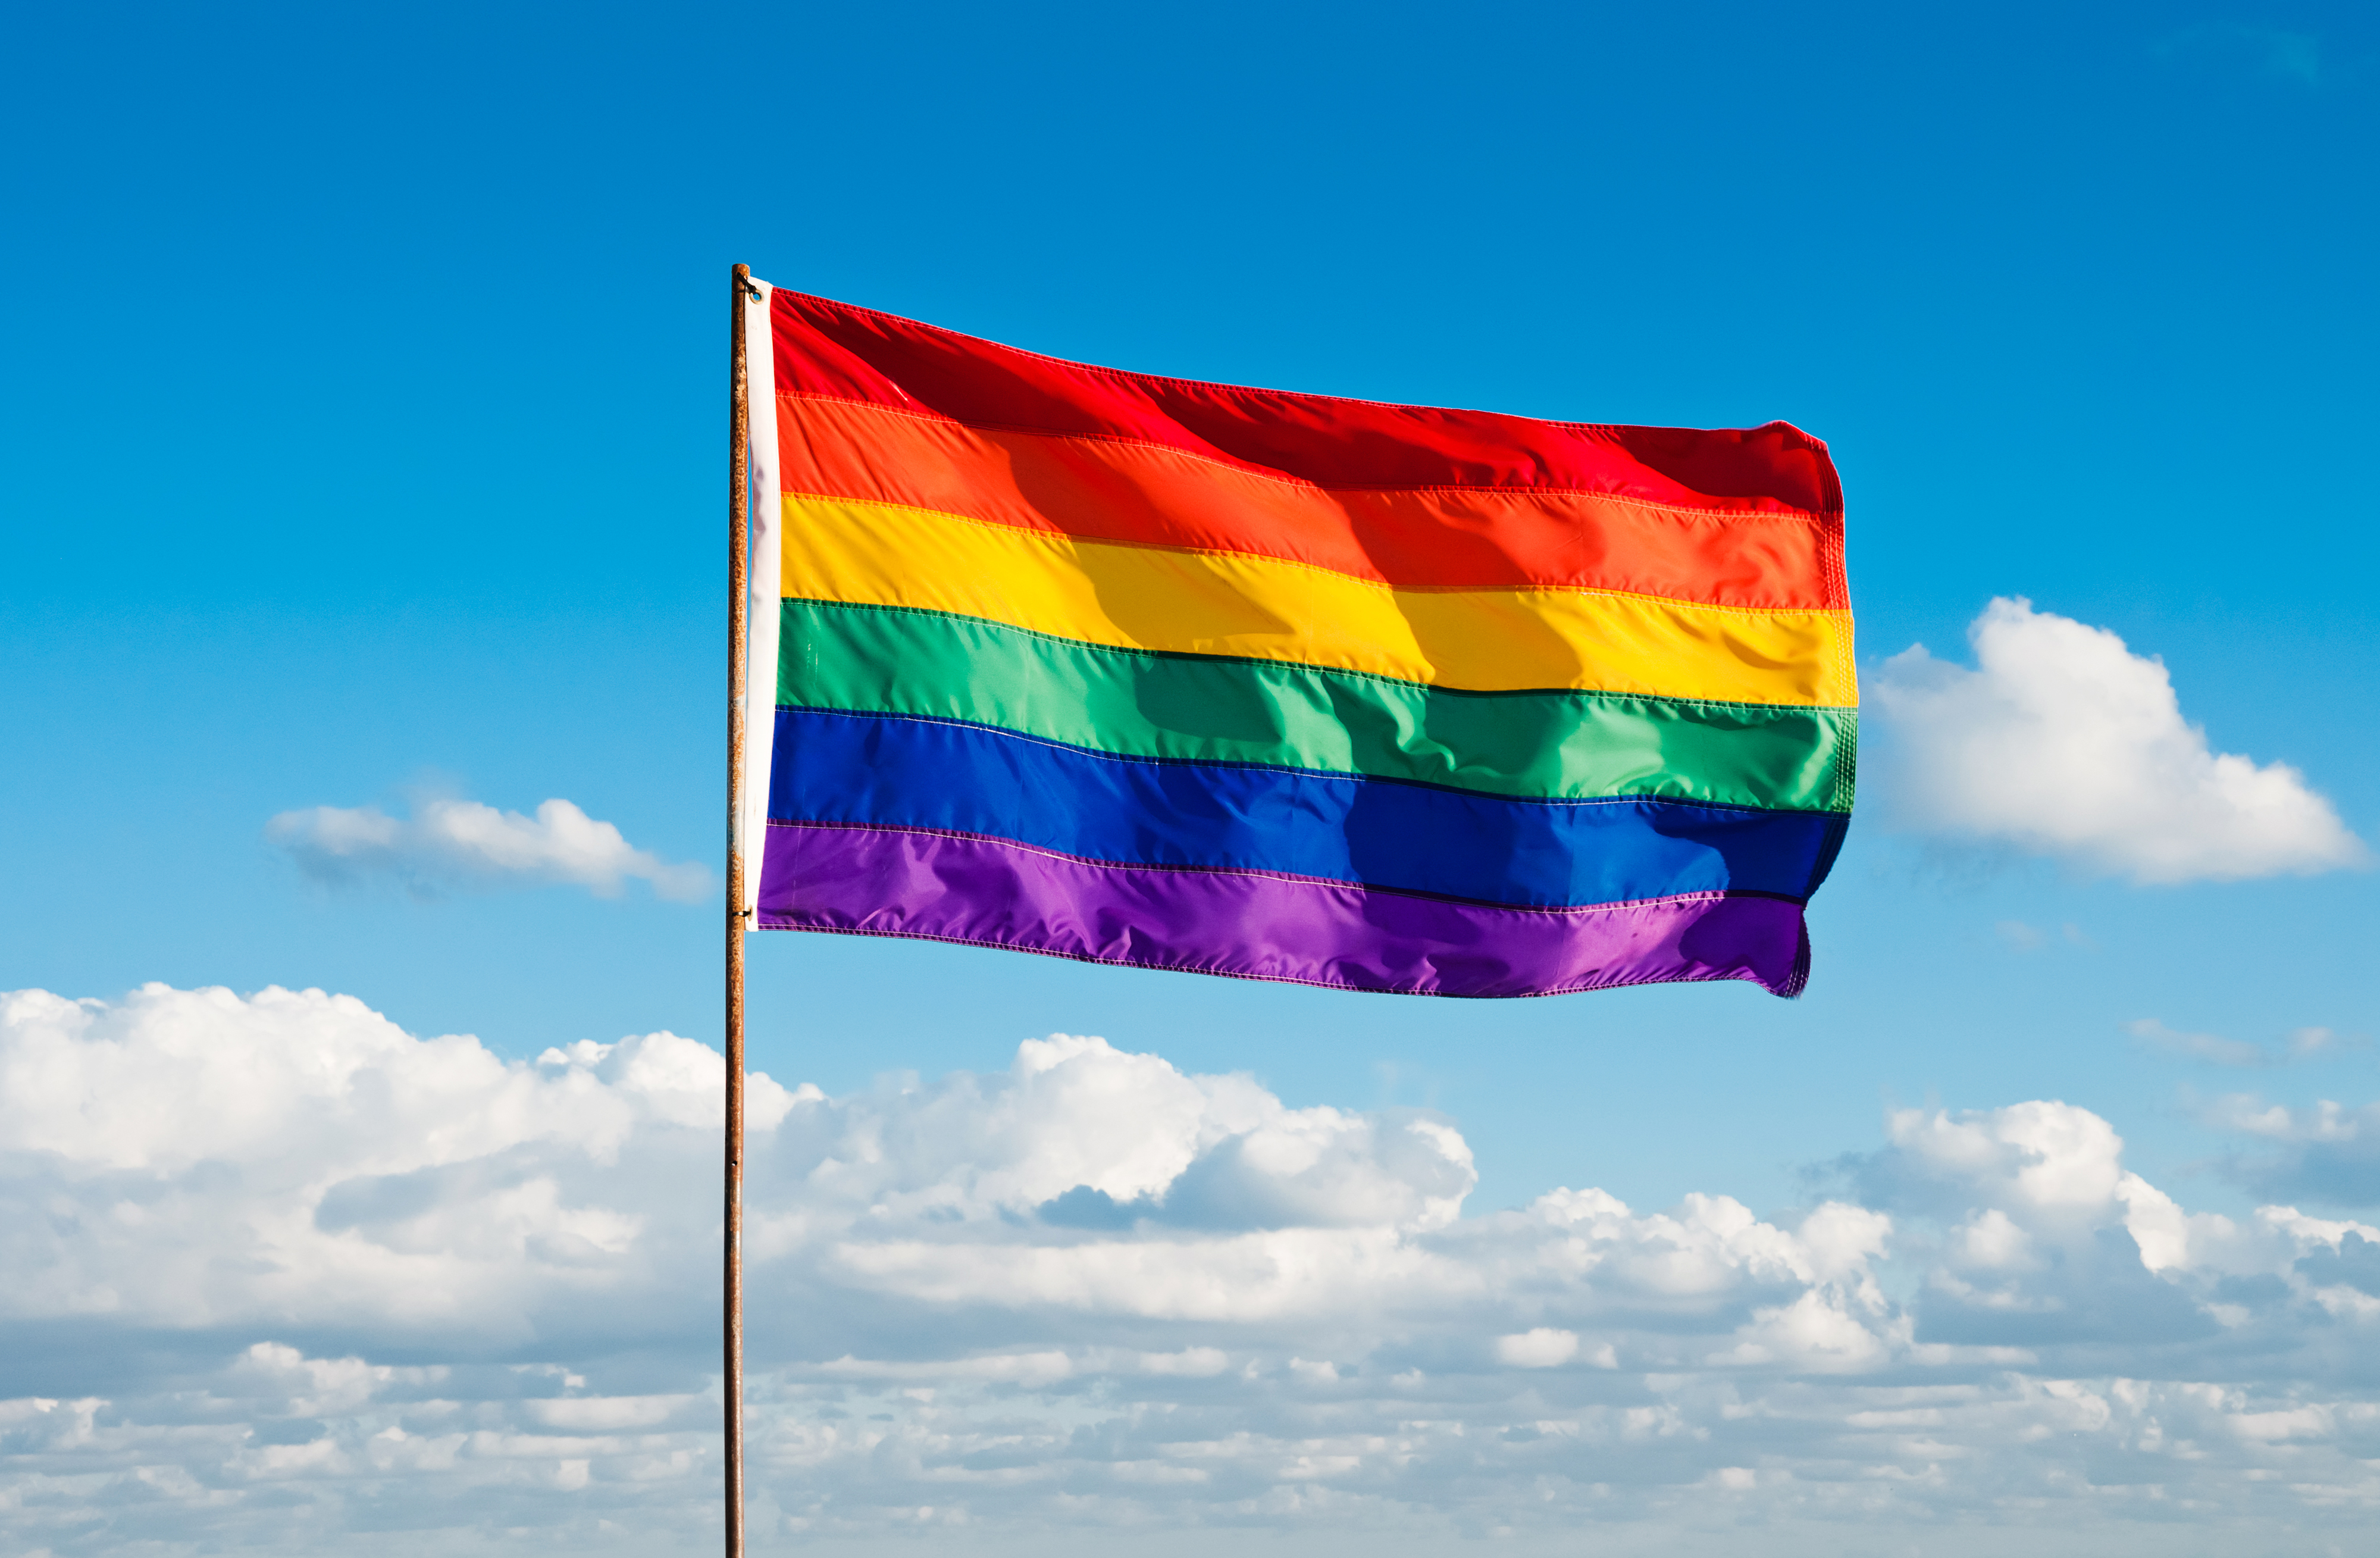 PFLAG's A Note to My Kid Helps Foster Stronger Communities